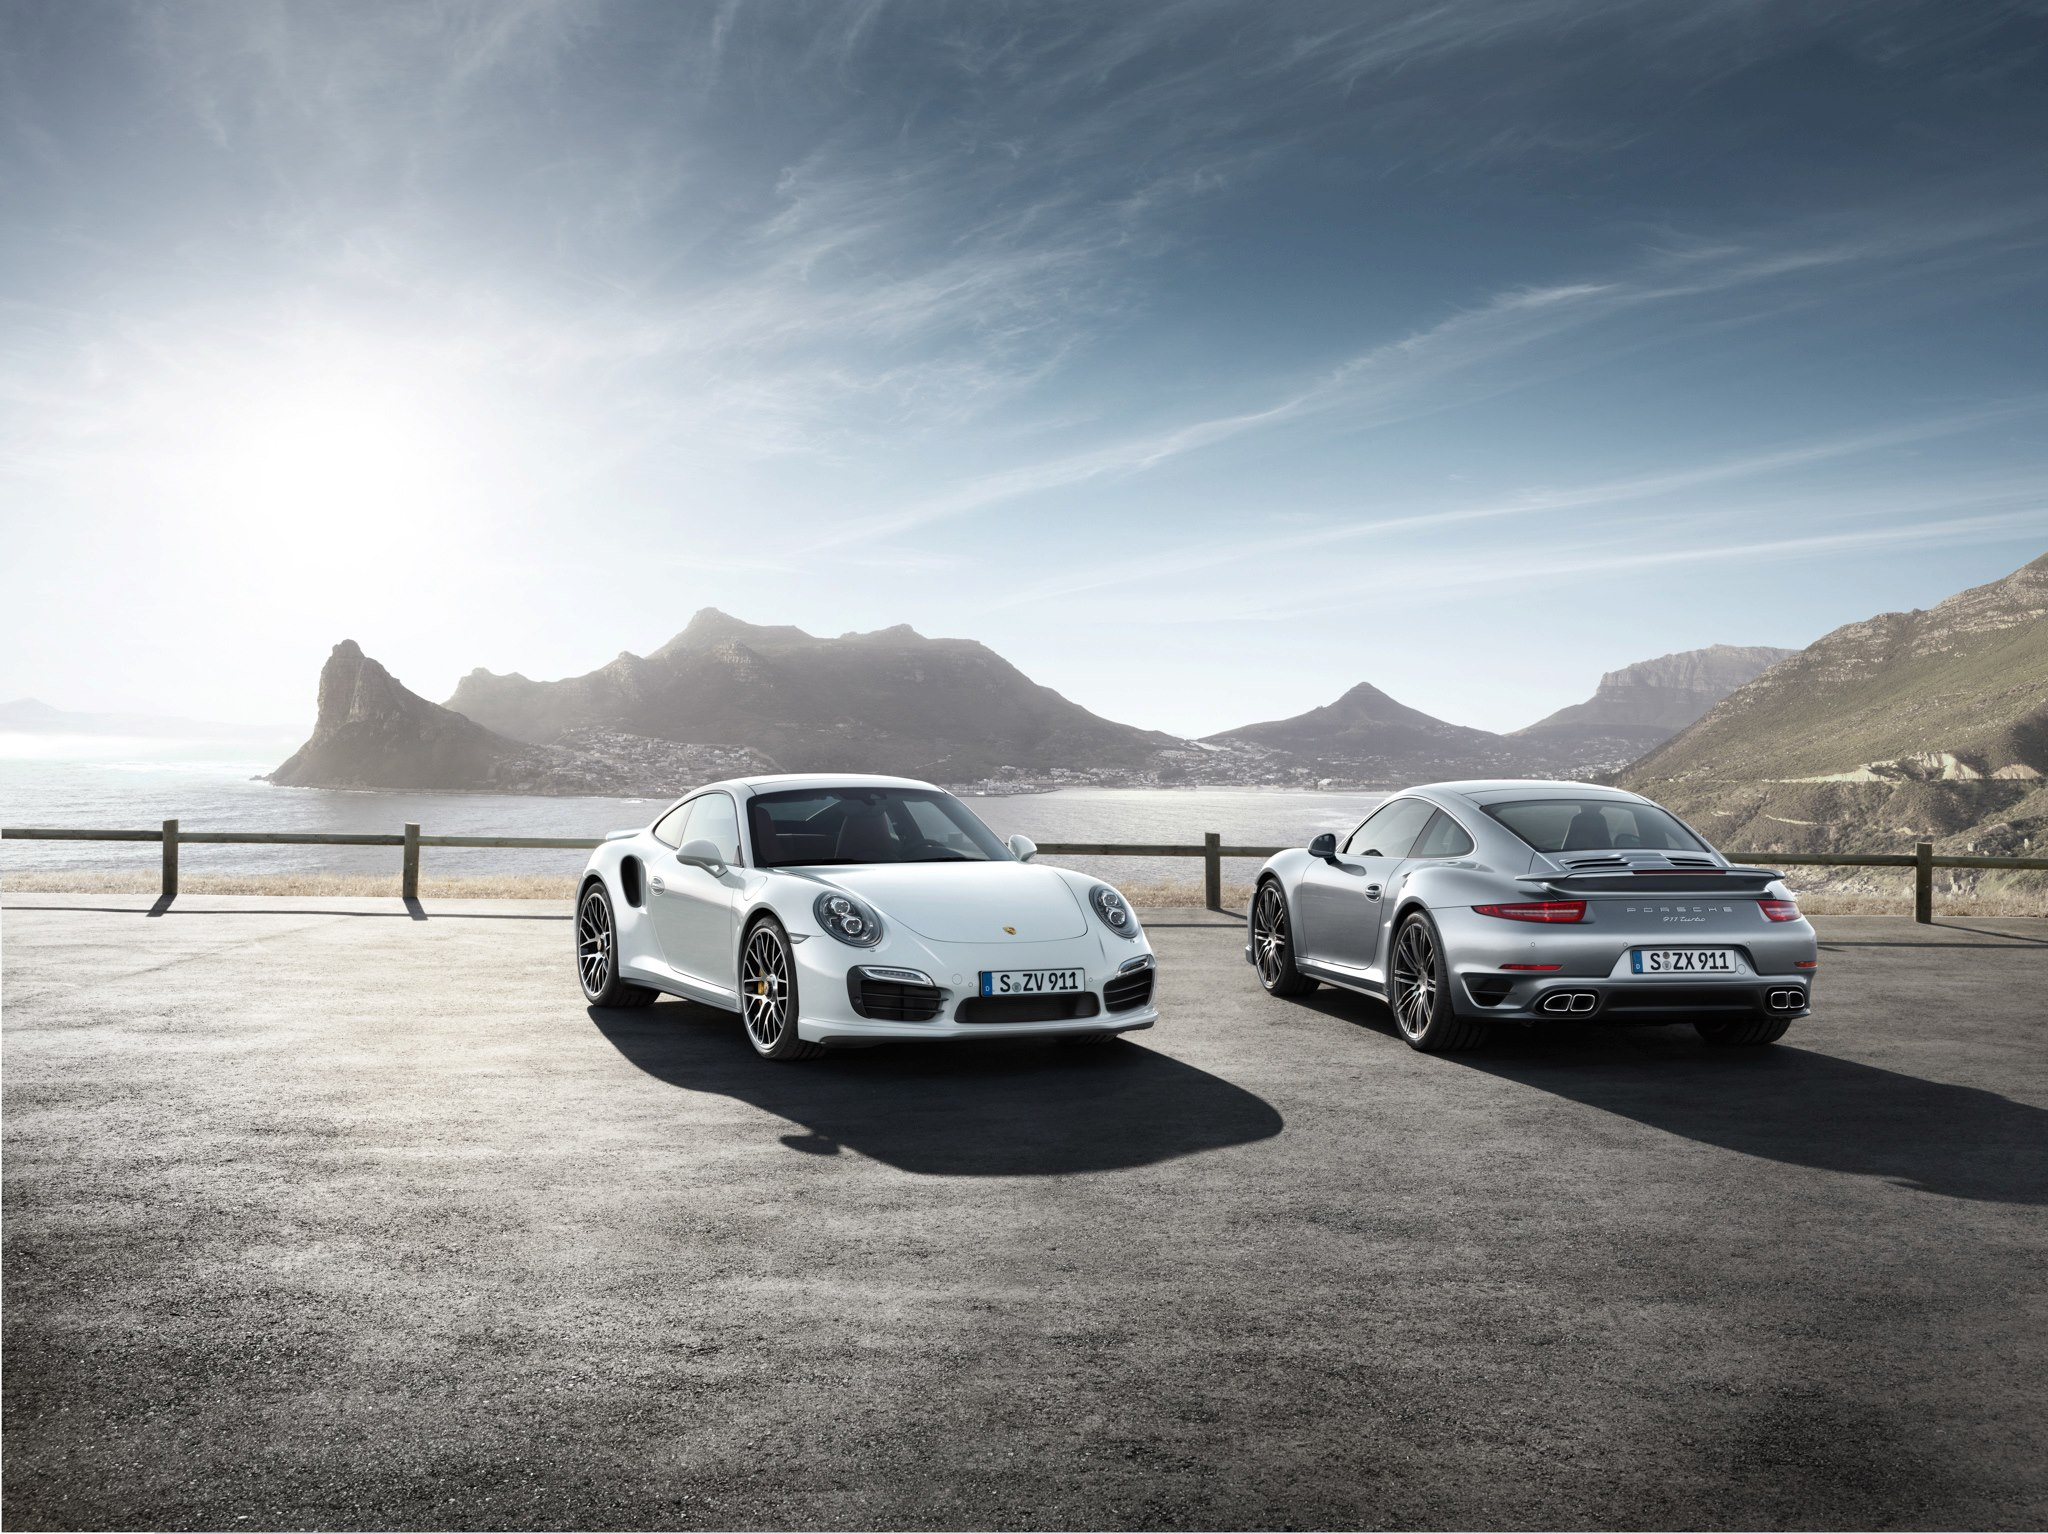 2013 porsche 911 turbo porsche 911 turbo 2013 wallpaper